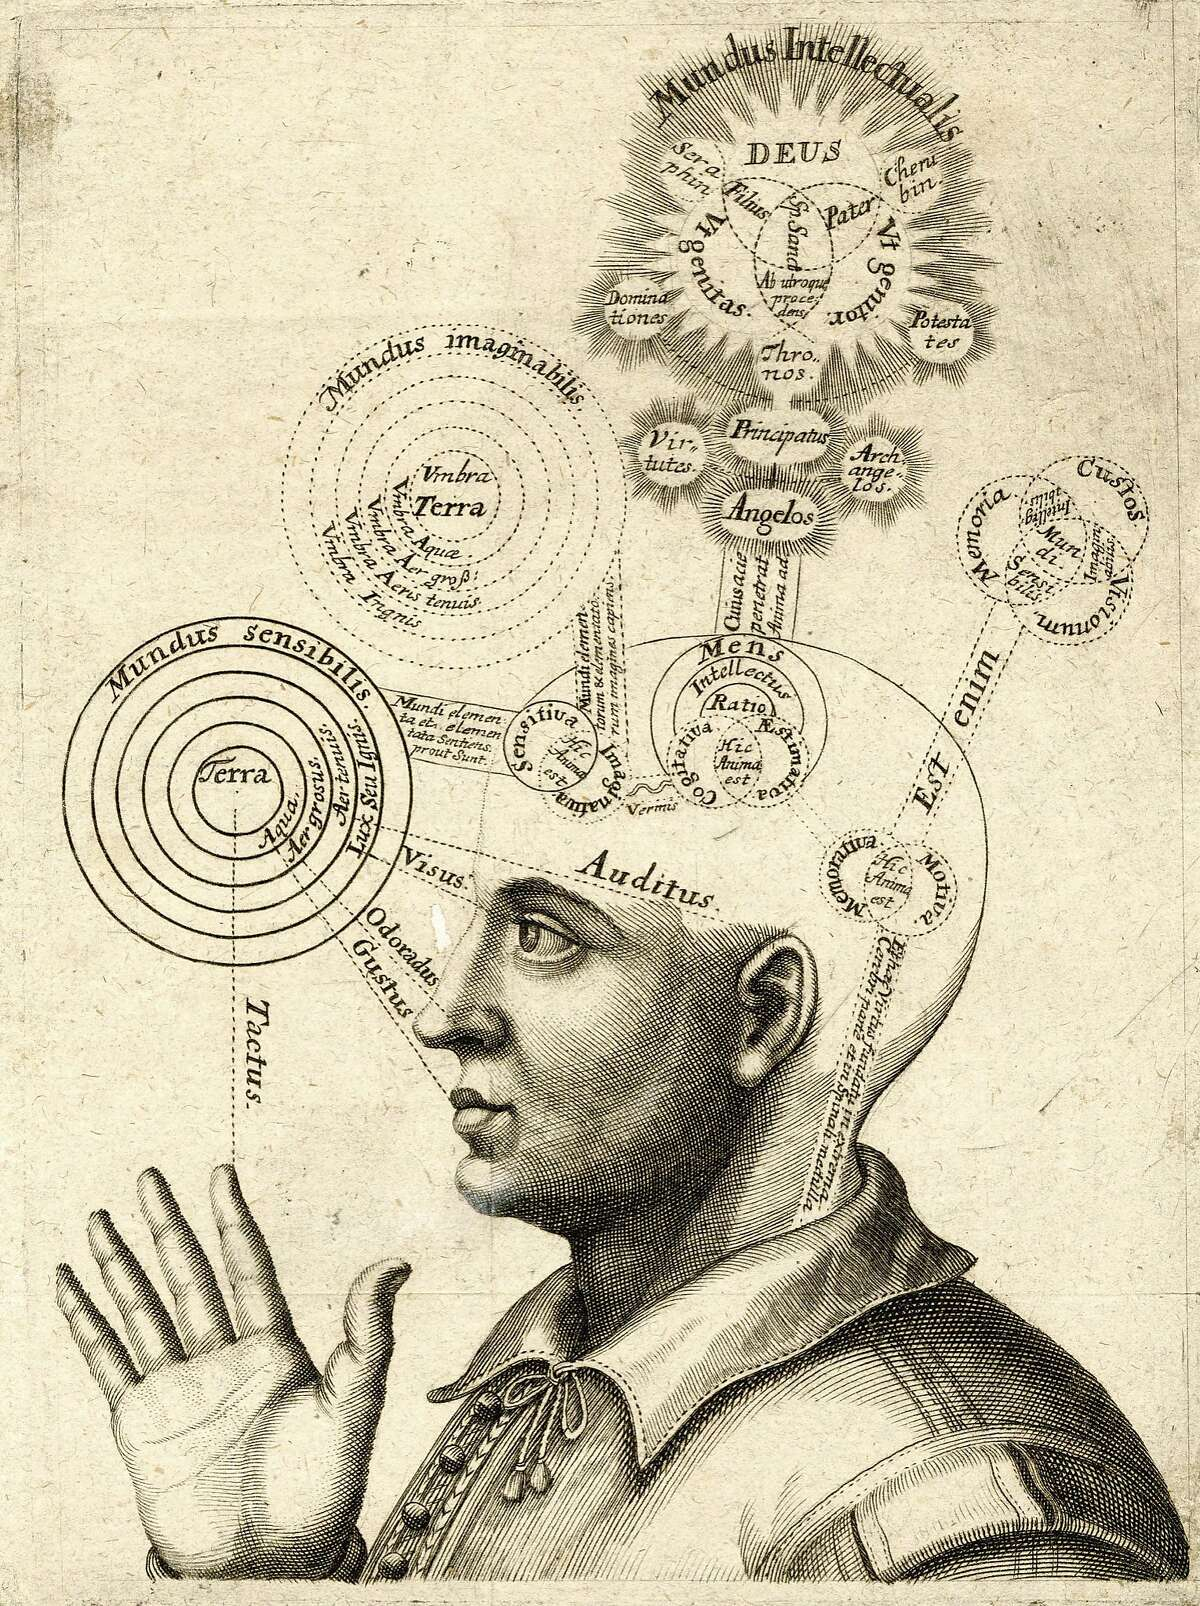 A print of the areas of the brain responsible for human thought, including the four senses, imagination, intellect and faith in God, circa 1650. Antique print of a man's head representing the areas of the brain responsible for human thought, including the four senses, imagination, intellect, and faith in God (copper engraving), c 1650. (Photo by GraphicaArtis/Getty Images)